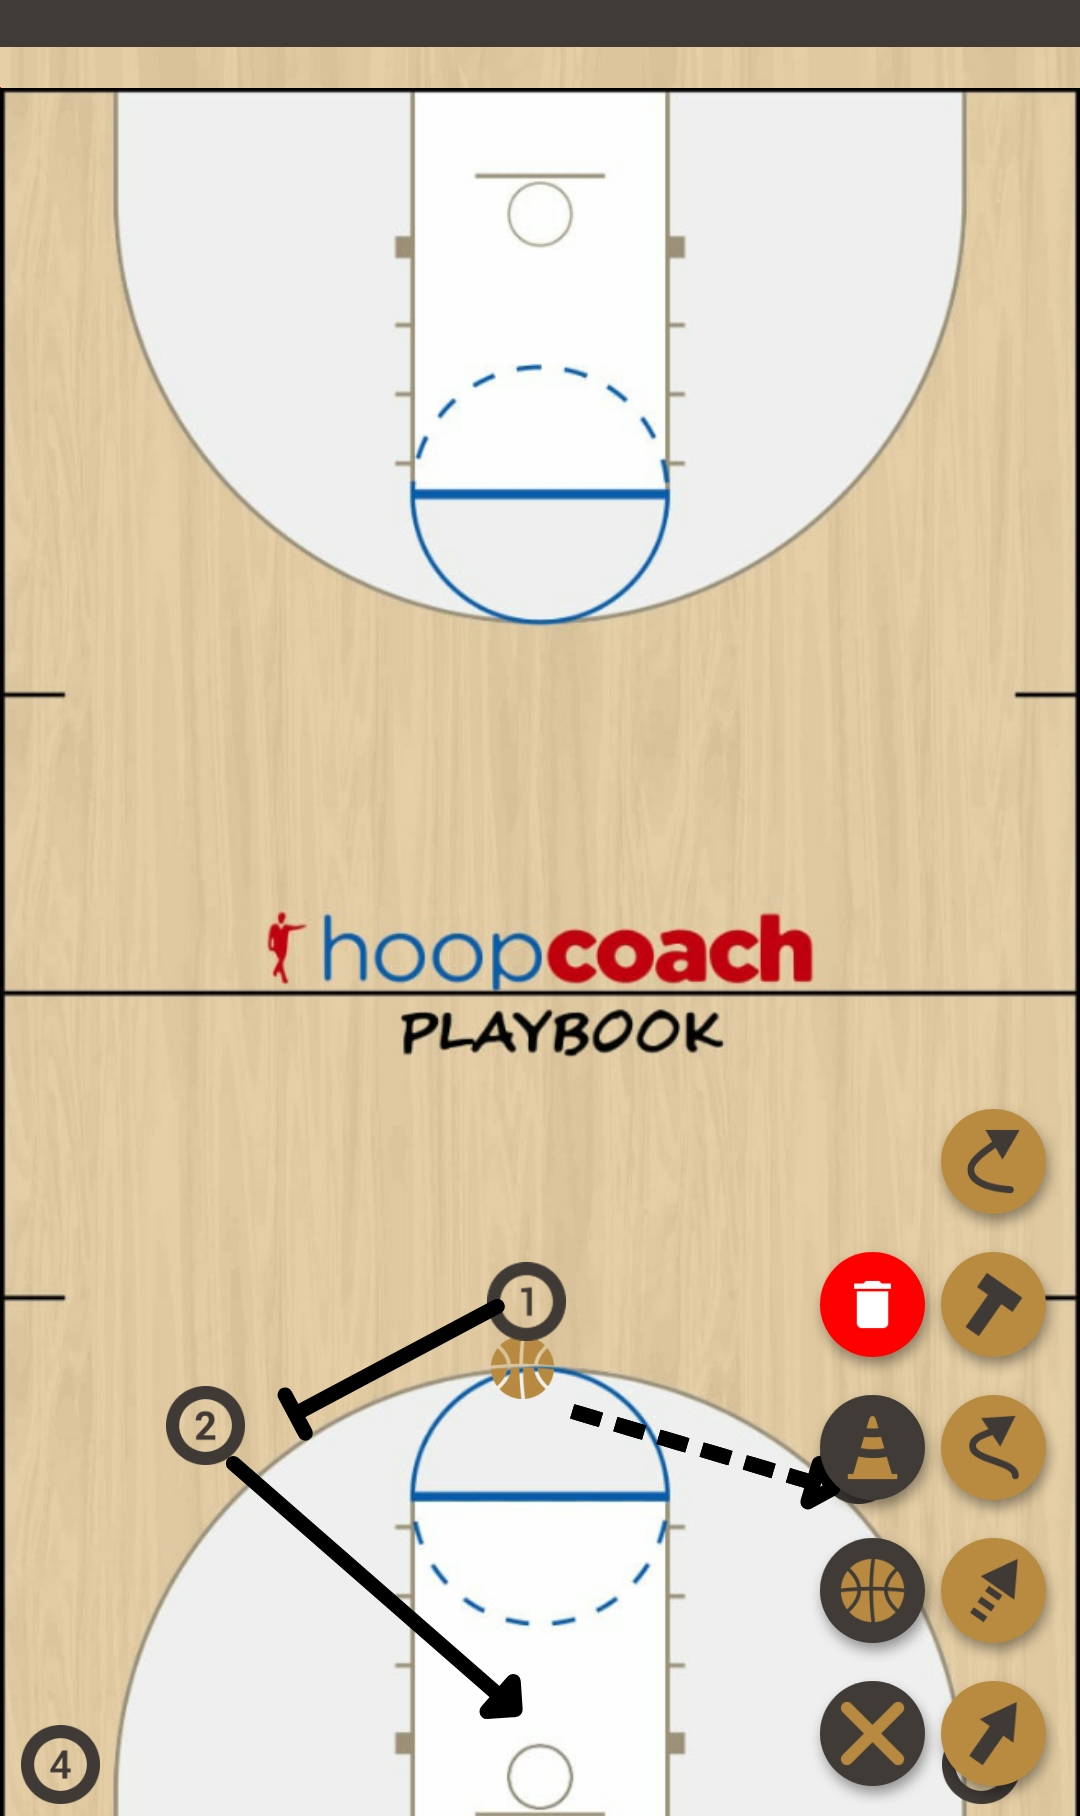 Basketball Play 5 vani Man to Man Offense offense